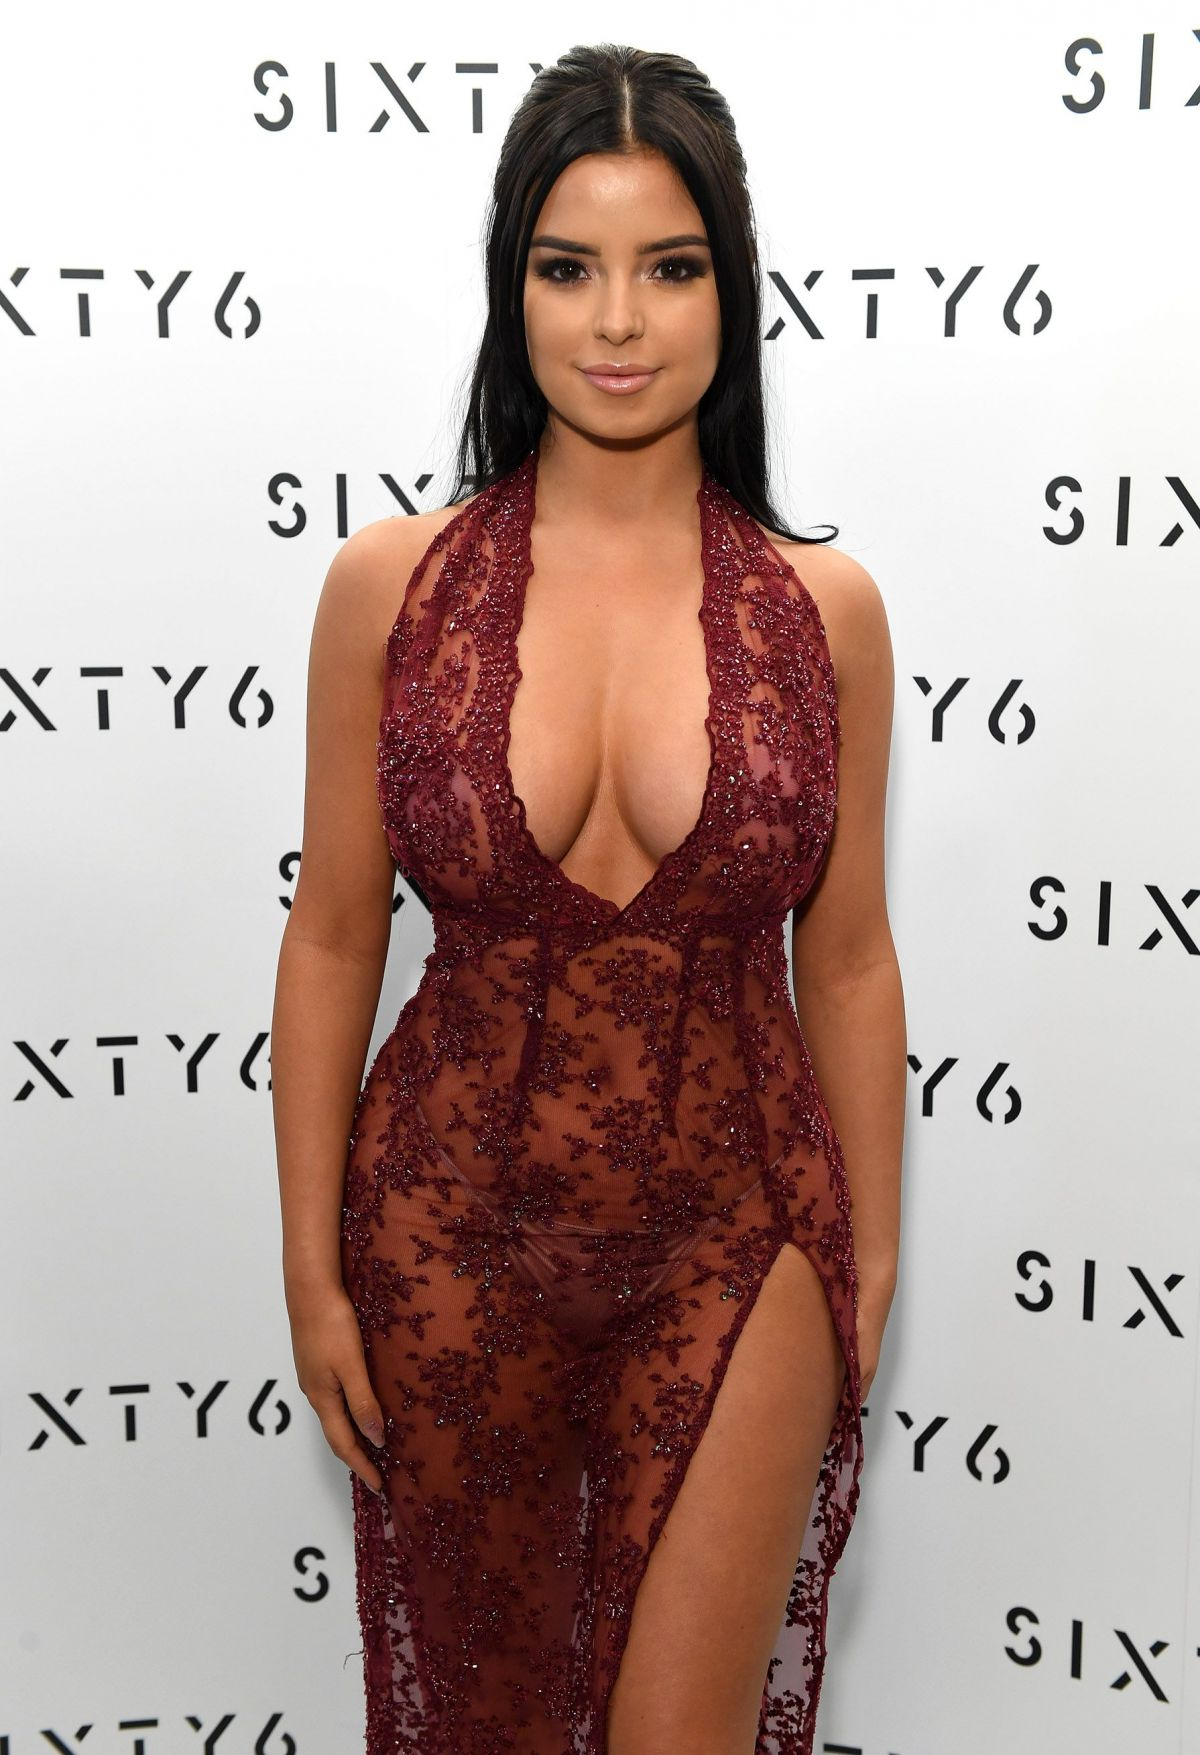 Demi Rose At Sixty6 Magazine Launch Party In London   demi-rose-at-sixty6-magazine-launch-party-in-london_19